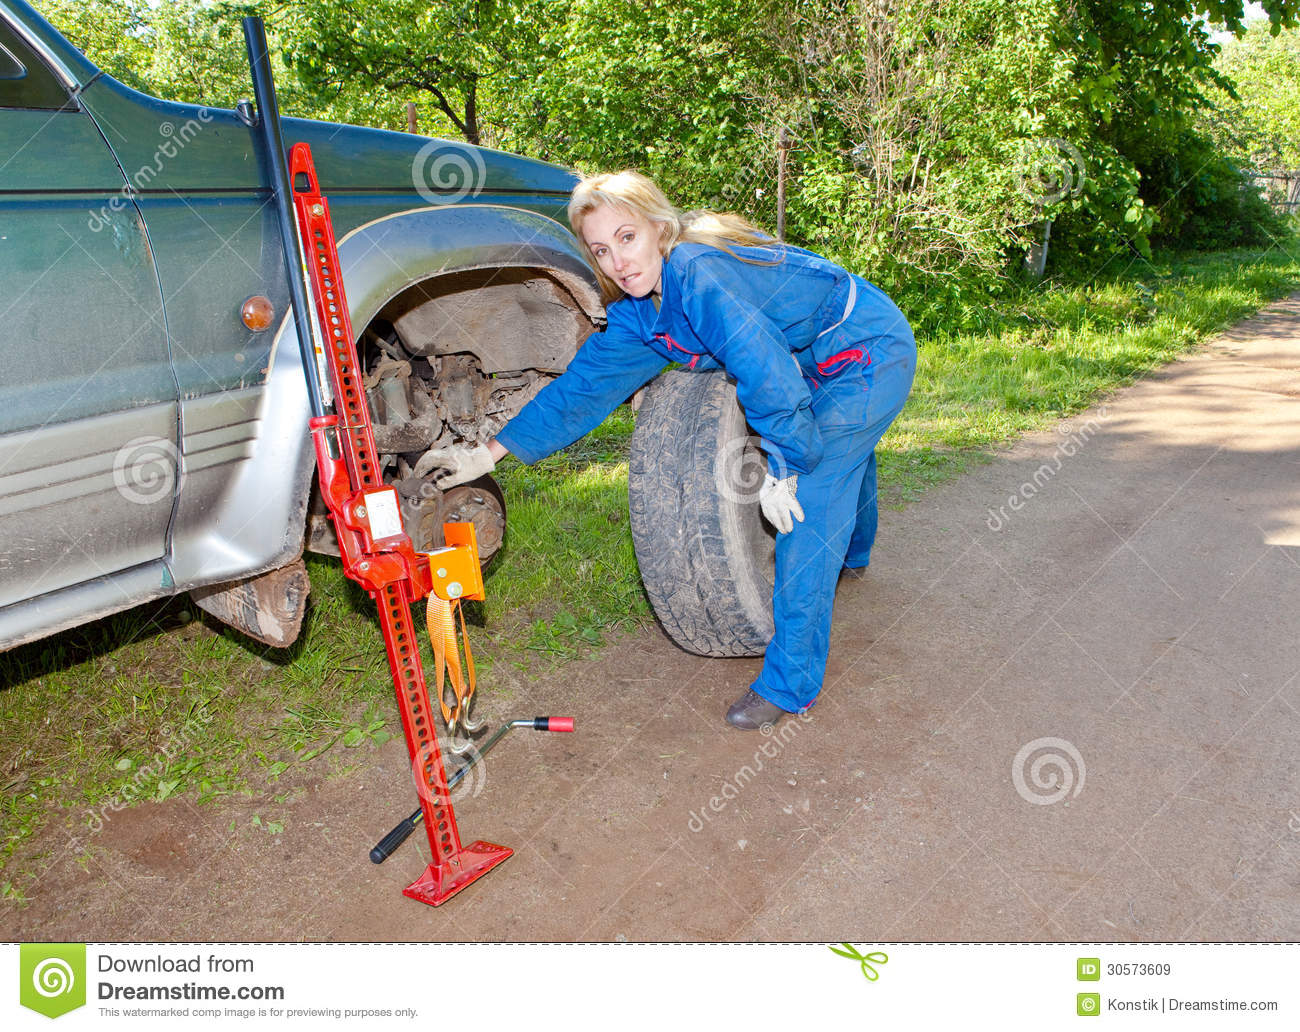 the person in blue working overalls works with a red rack jack about the car stock image image automotive service manuals automobile service manuals online